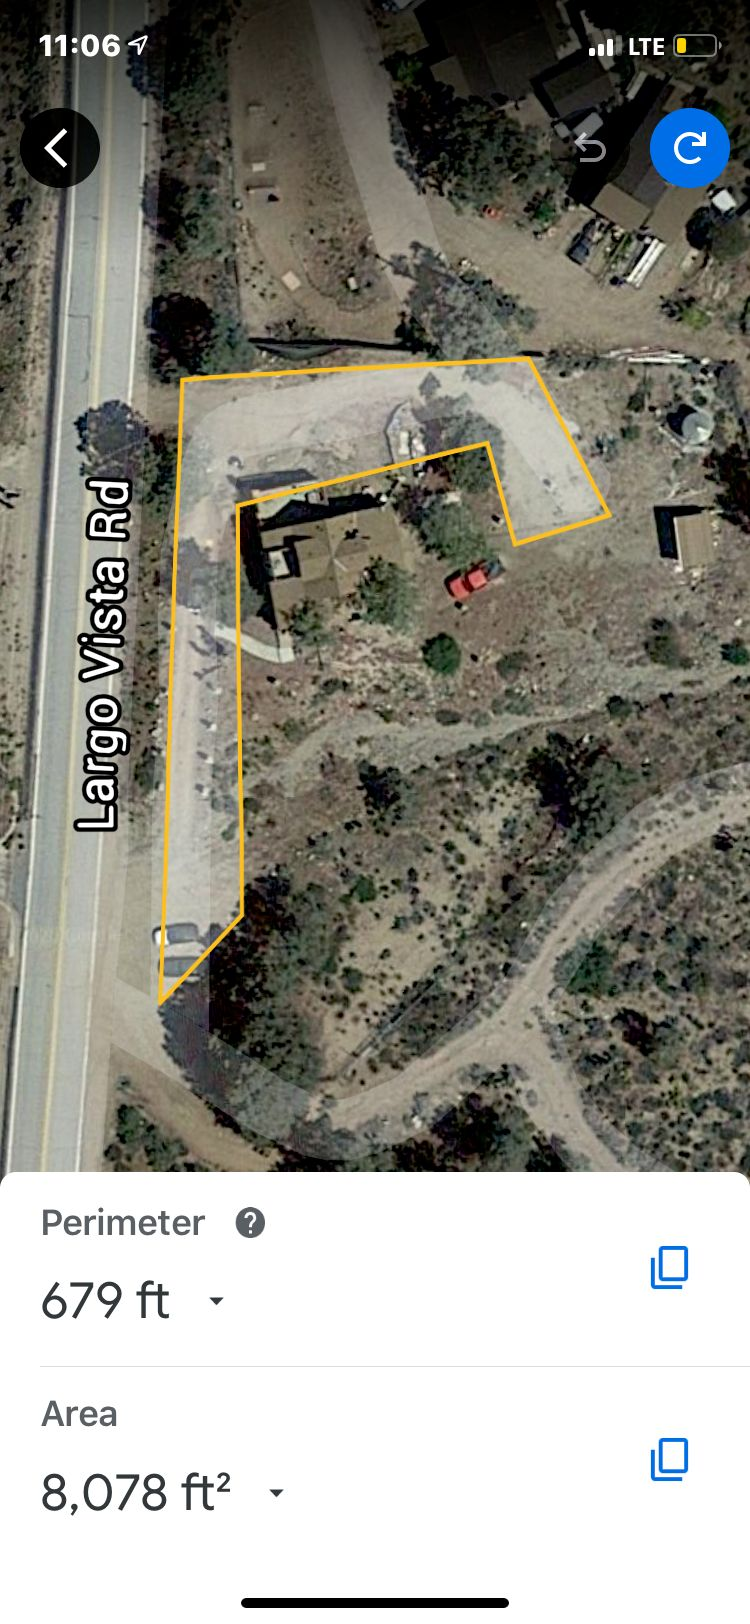 Land grading and base for water tank